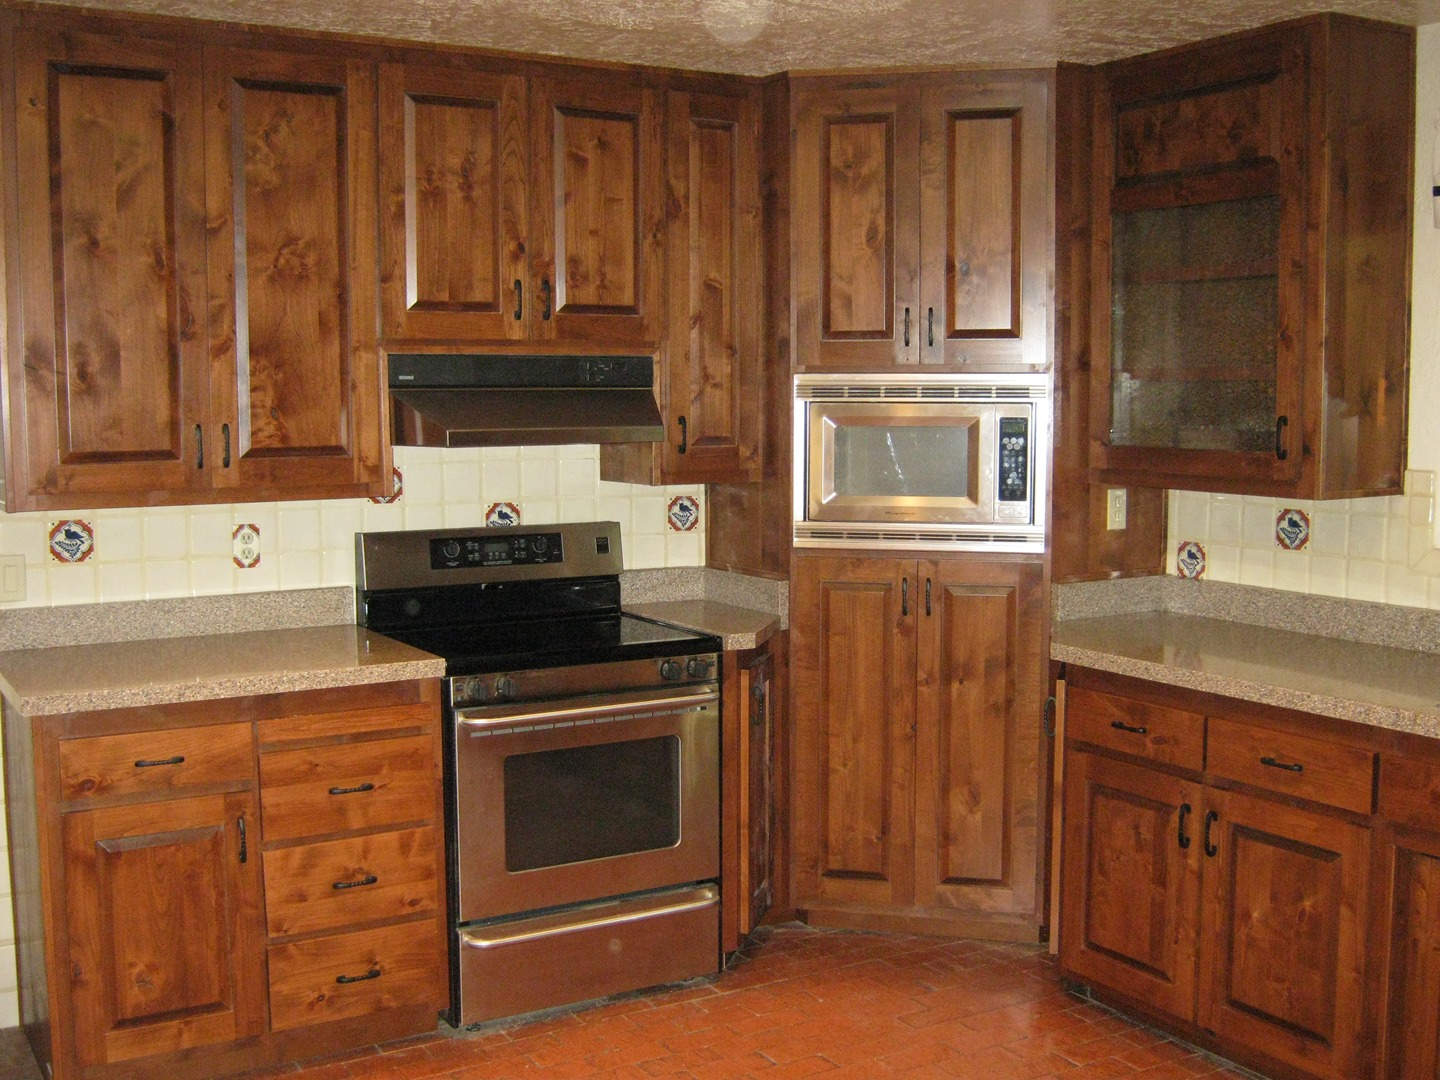 Kitchen Cabinet Refacing, Kitchen Cabinet Building - Quality ... on utopian kitchen, cleanest kitchen, old ugly kitchen, badly designed kitchen, painting ugly kitchen, pink kitchen, oldest kitchen,